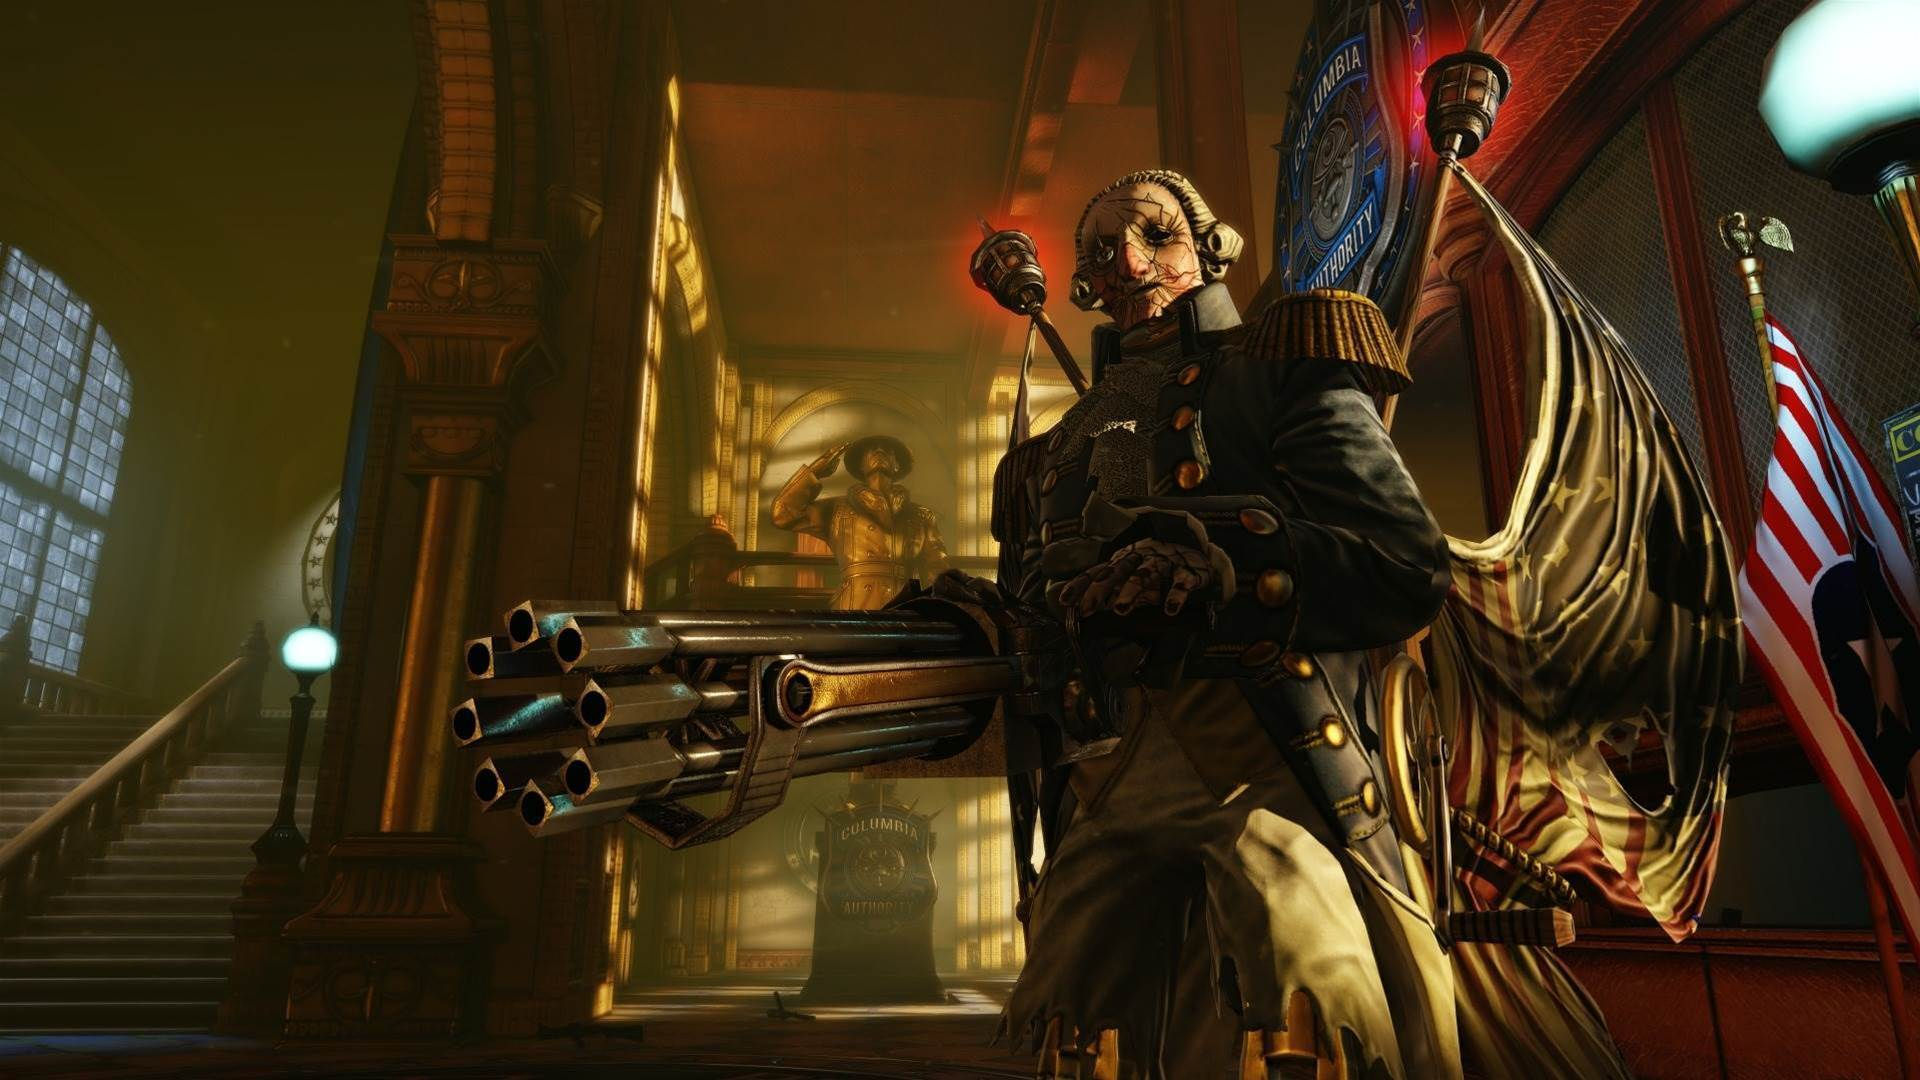 New Humble Bundle contains Bioshock Infinite, others